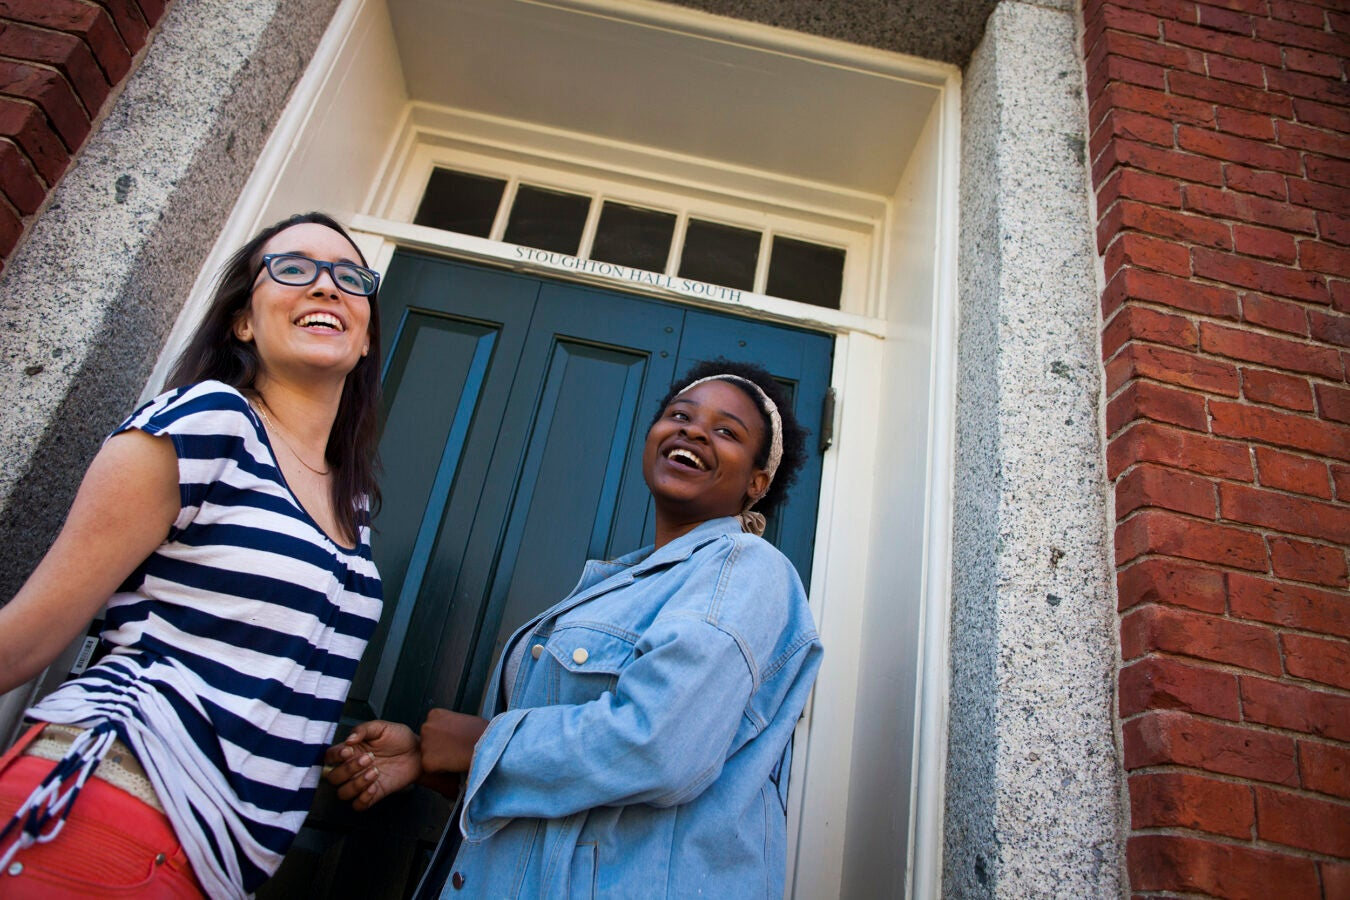 Tatiana Patino '20 (left), from Georgia, and Walburga Khumalo '20, from South Africa, share a room in Stoughton Hall.